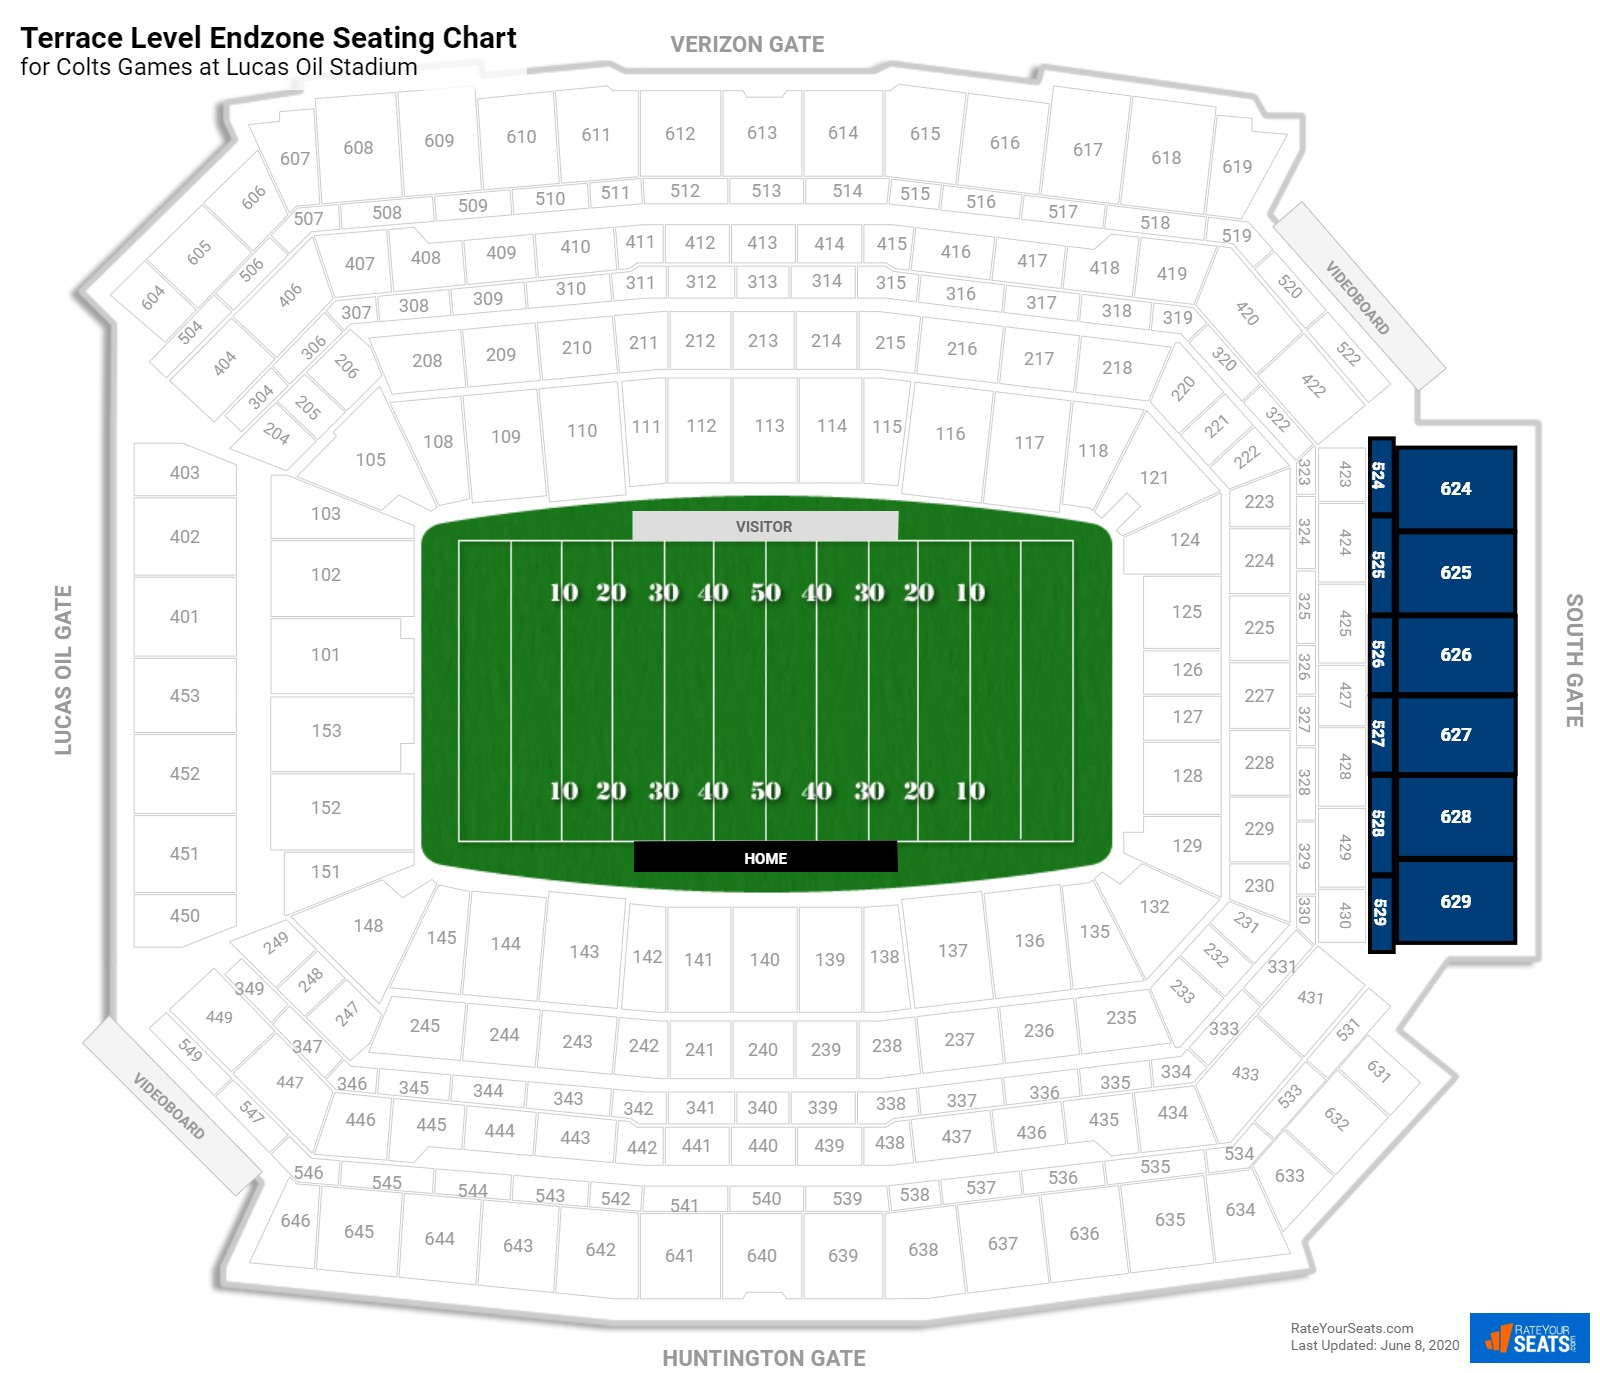 Lucas Oil Stadium Terrace Level Endzone seating chart